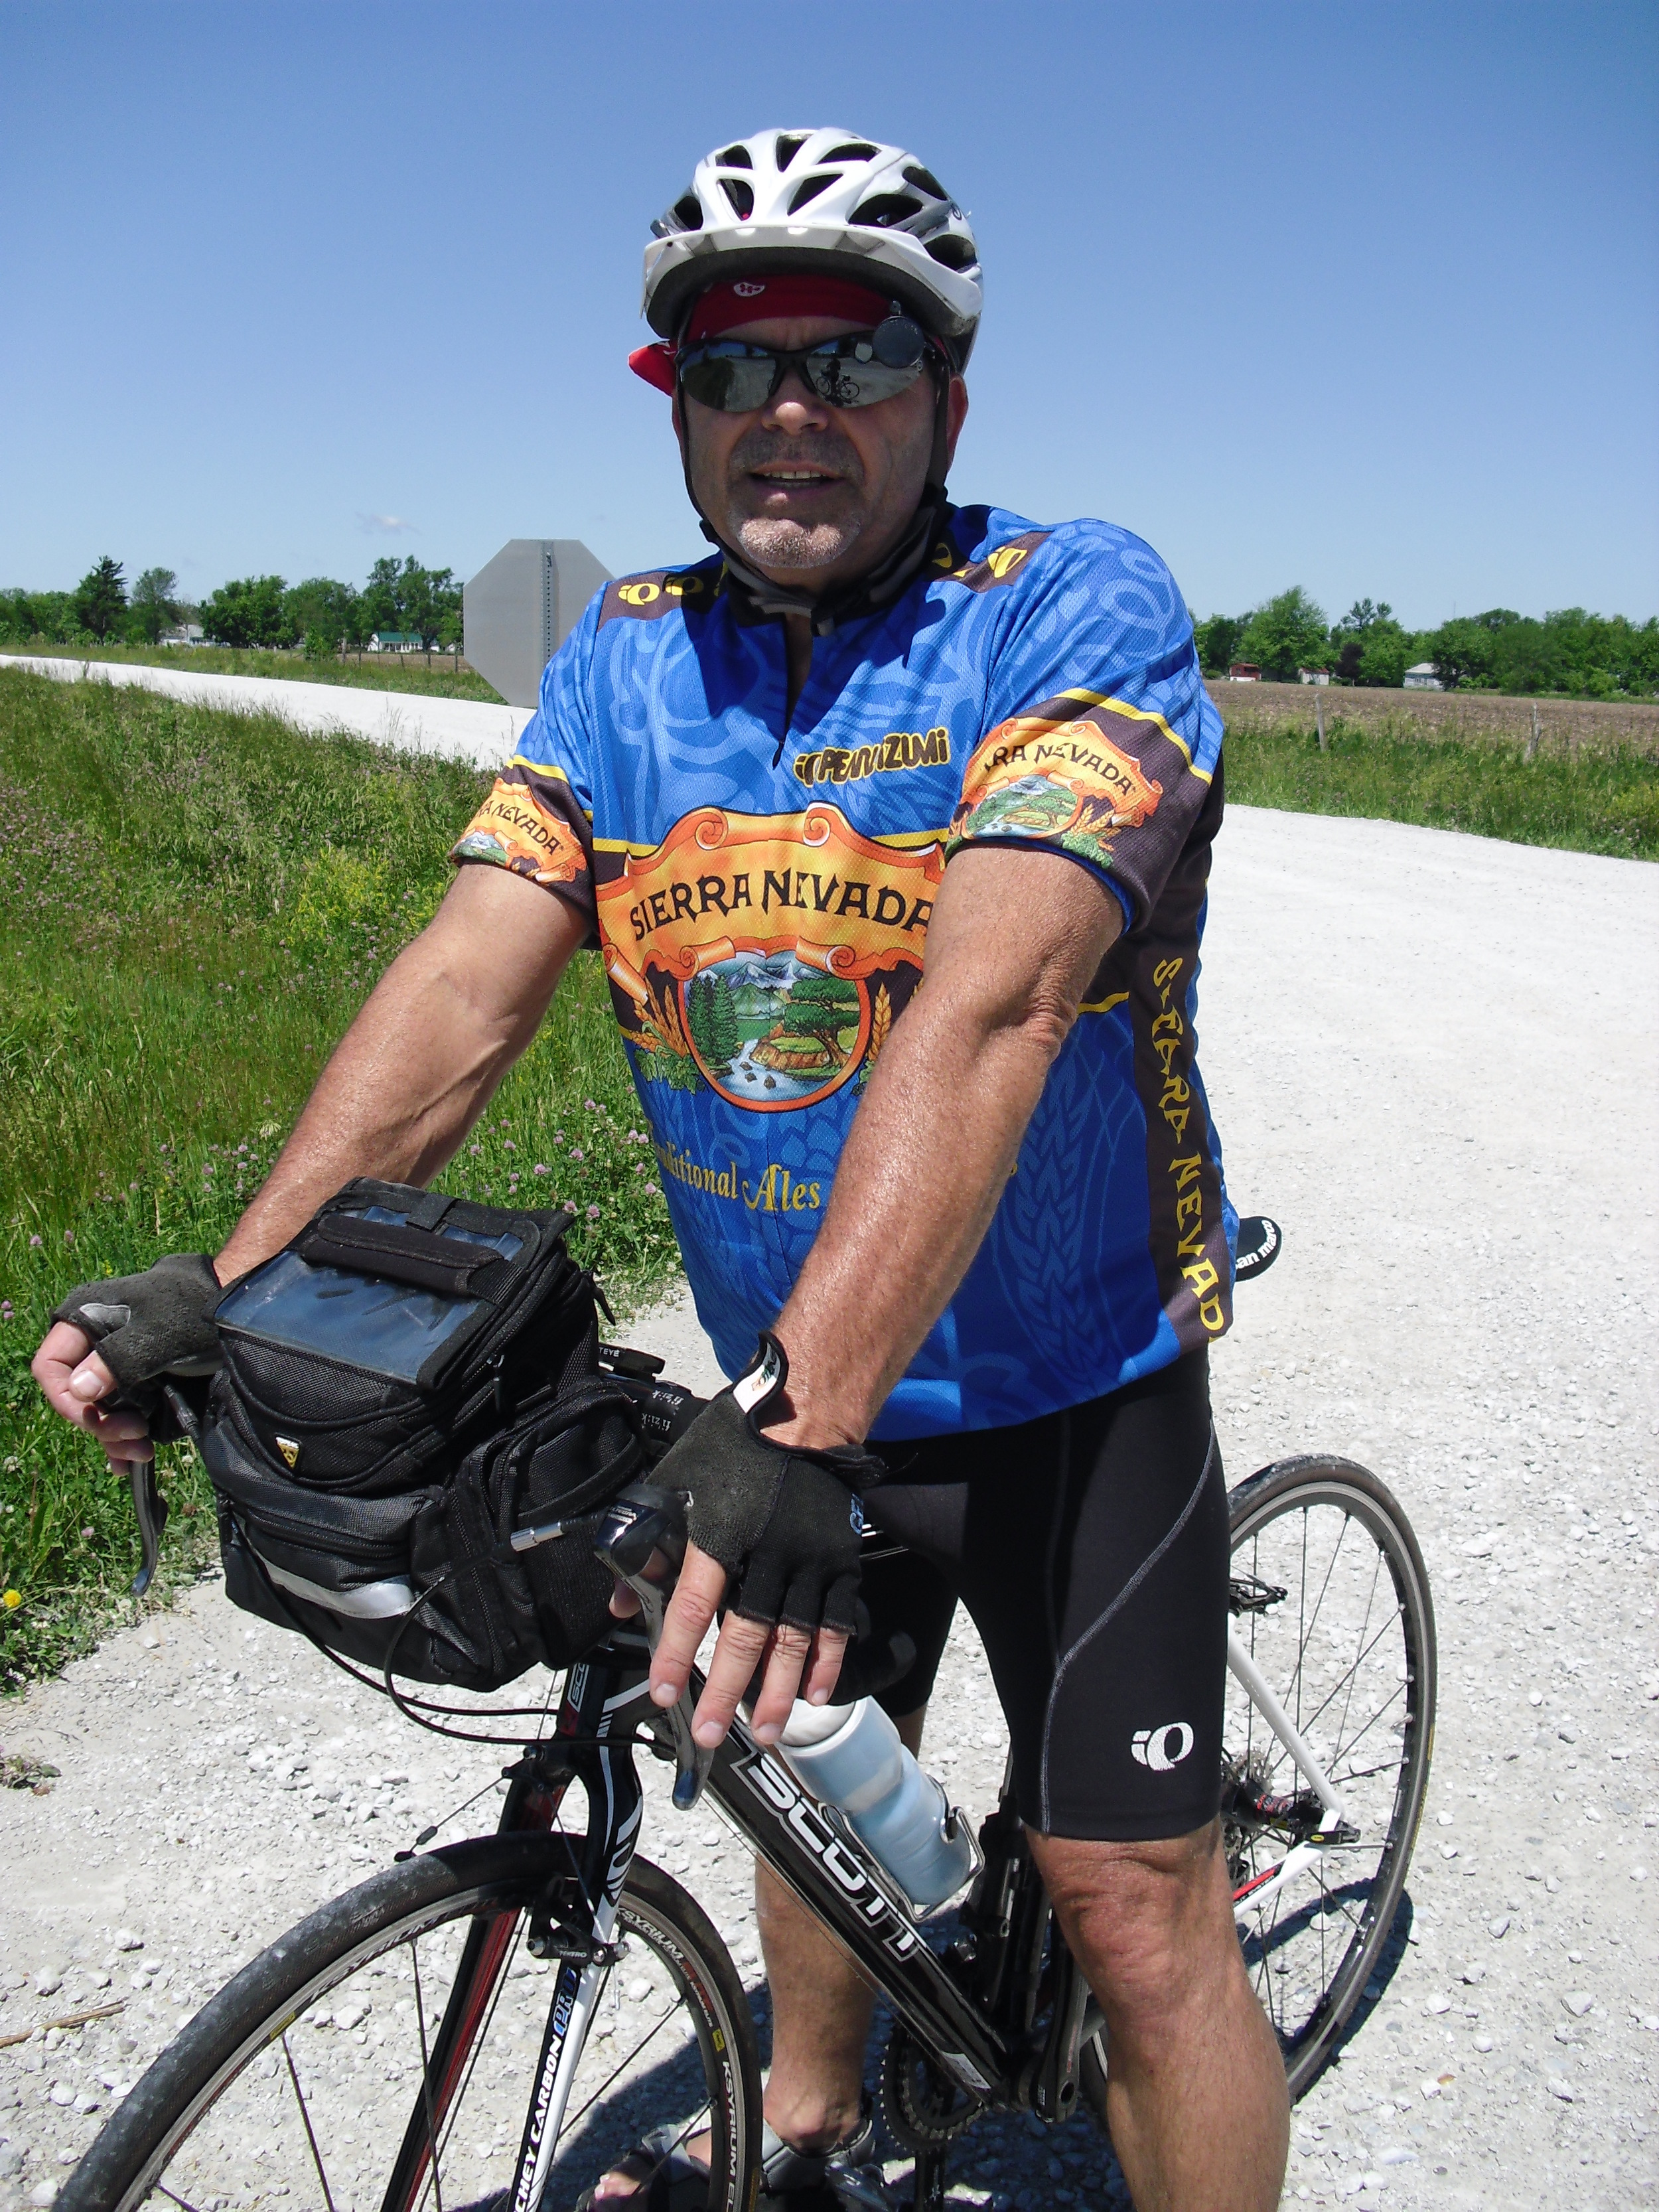 Steve Snook, on the road with his carbon fiber bike.